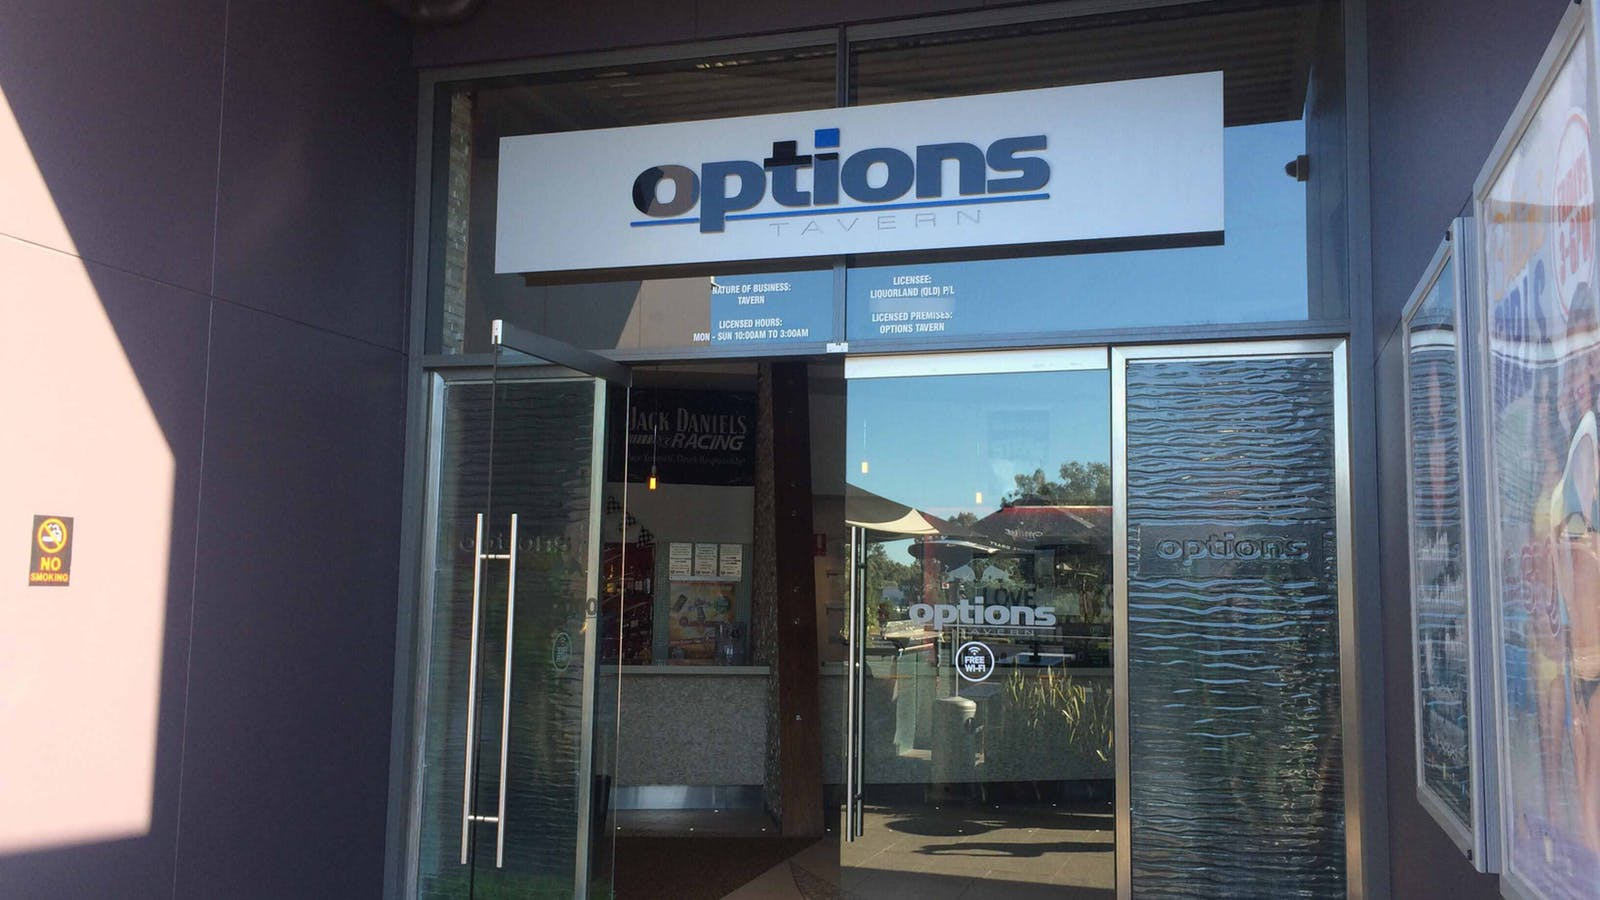 Options Tavern